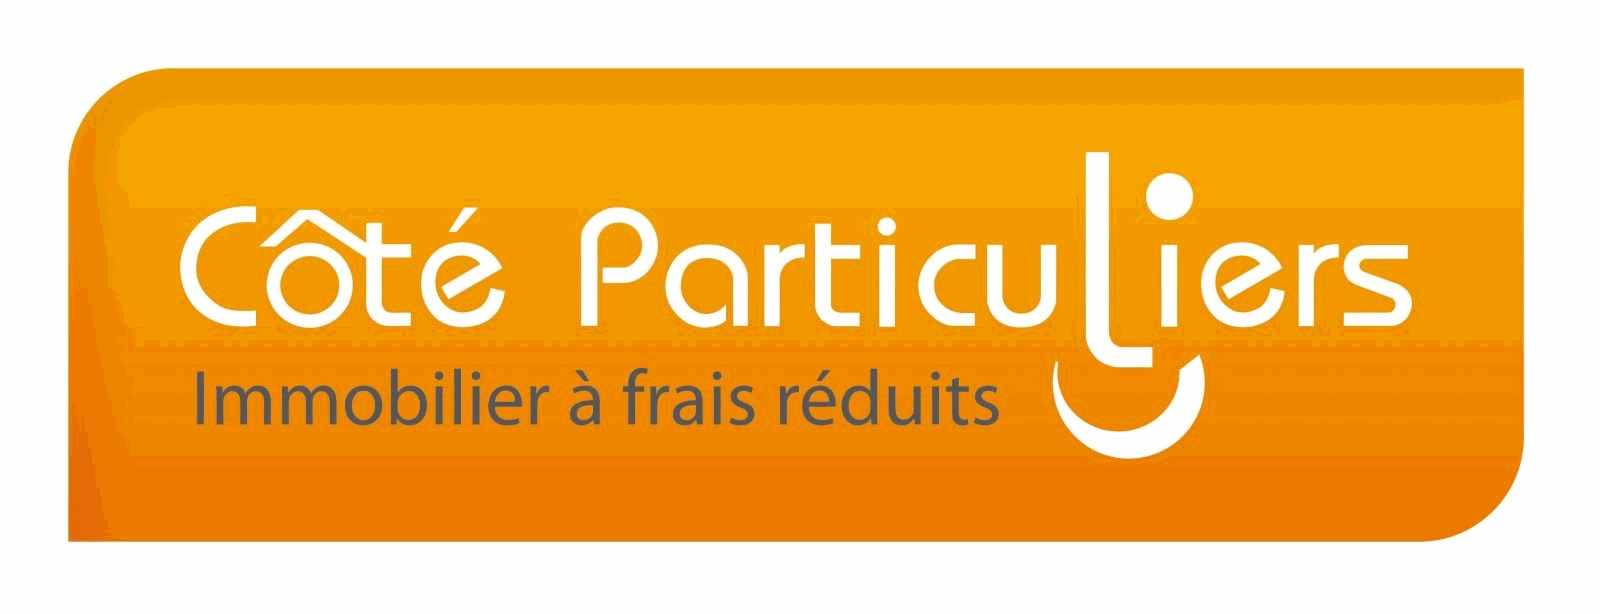 C t particuliers agence immobili re tarbes for Agence immobiliere tarbes